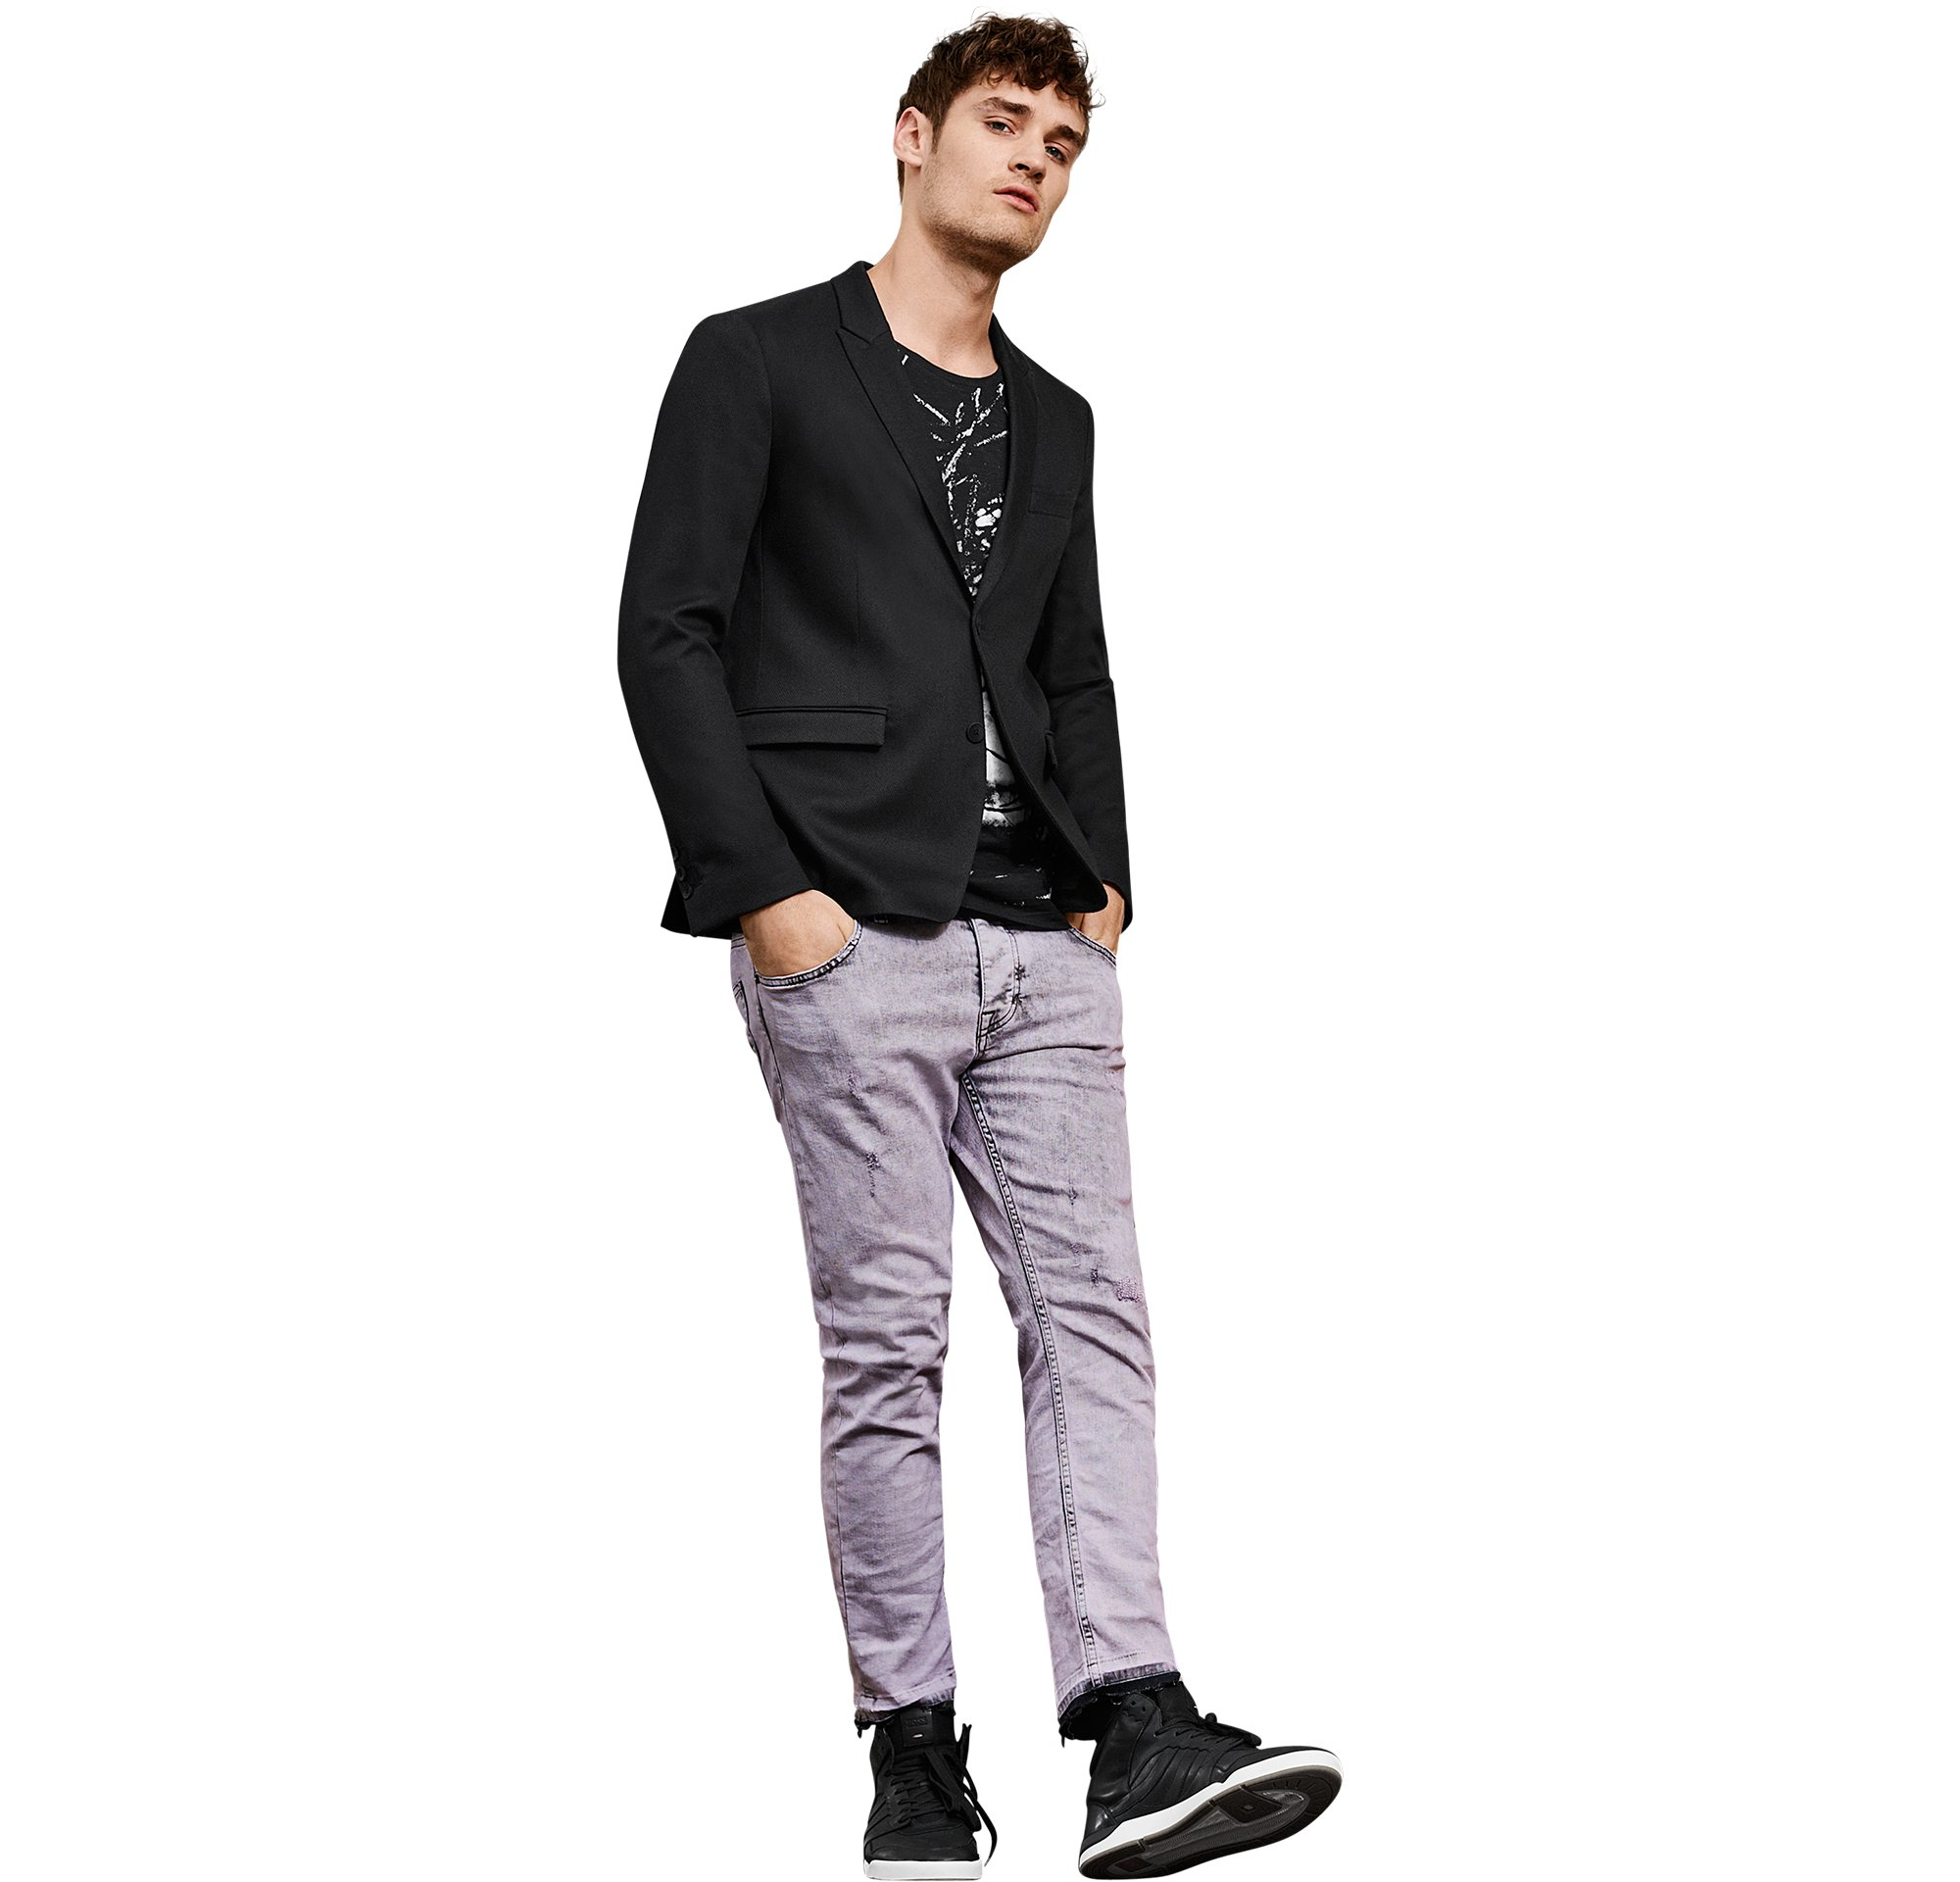 Black jacket over black jersey with pastel jeans and black shoes by BOSS Orange